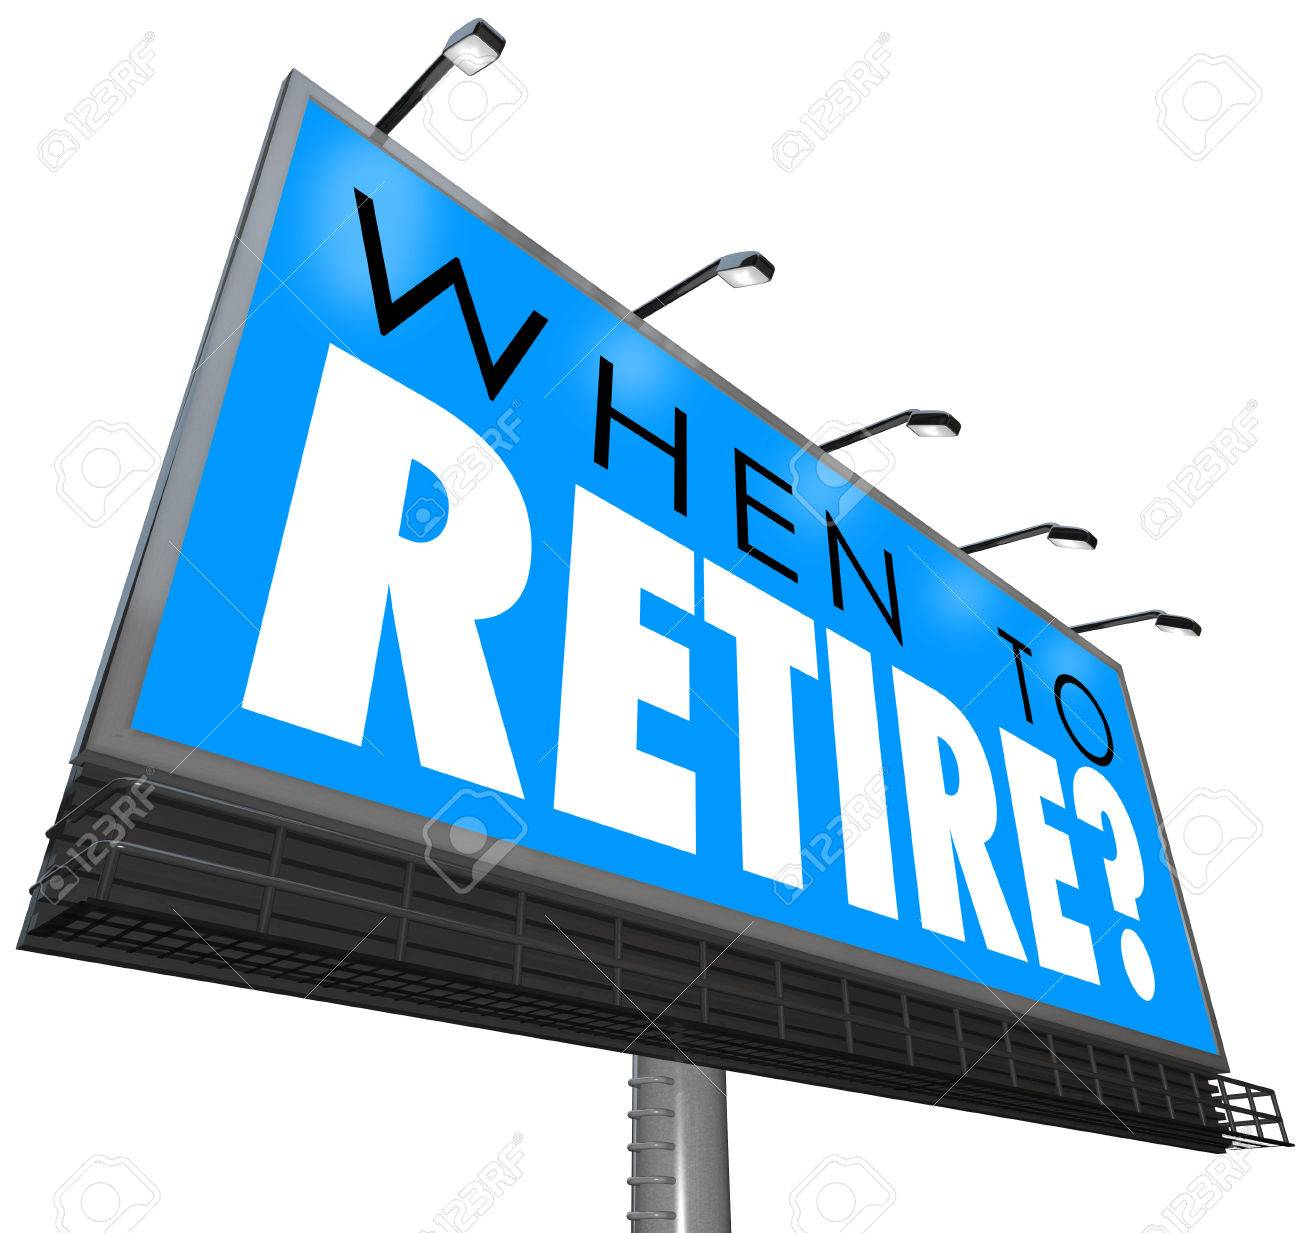 when to retire words on a blue billboard or sign asking if you stock photo when to retire words on a blue billboard or sign asking if you are ready to end your job or career and if you have financial security in money